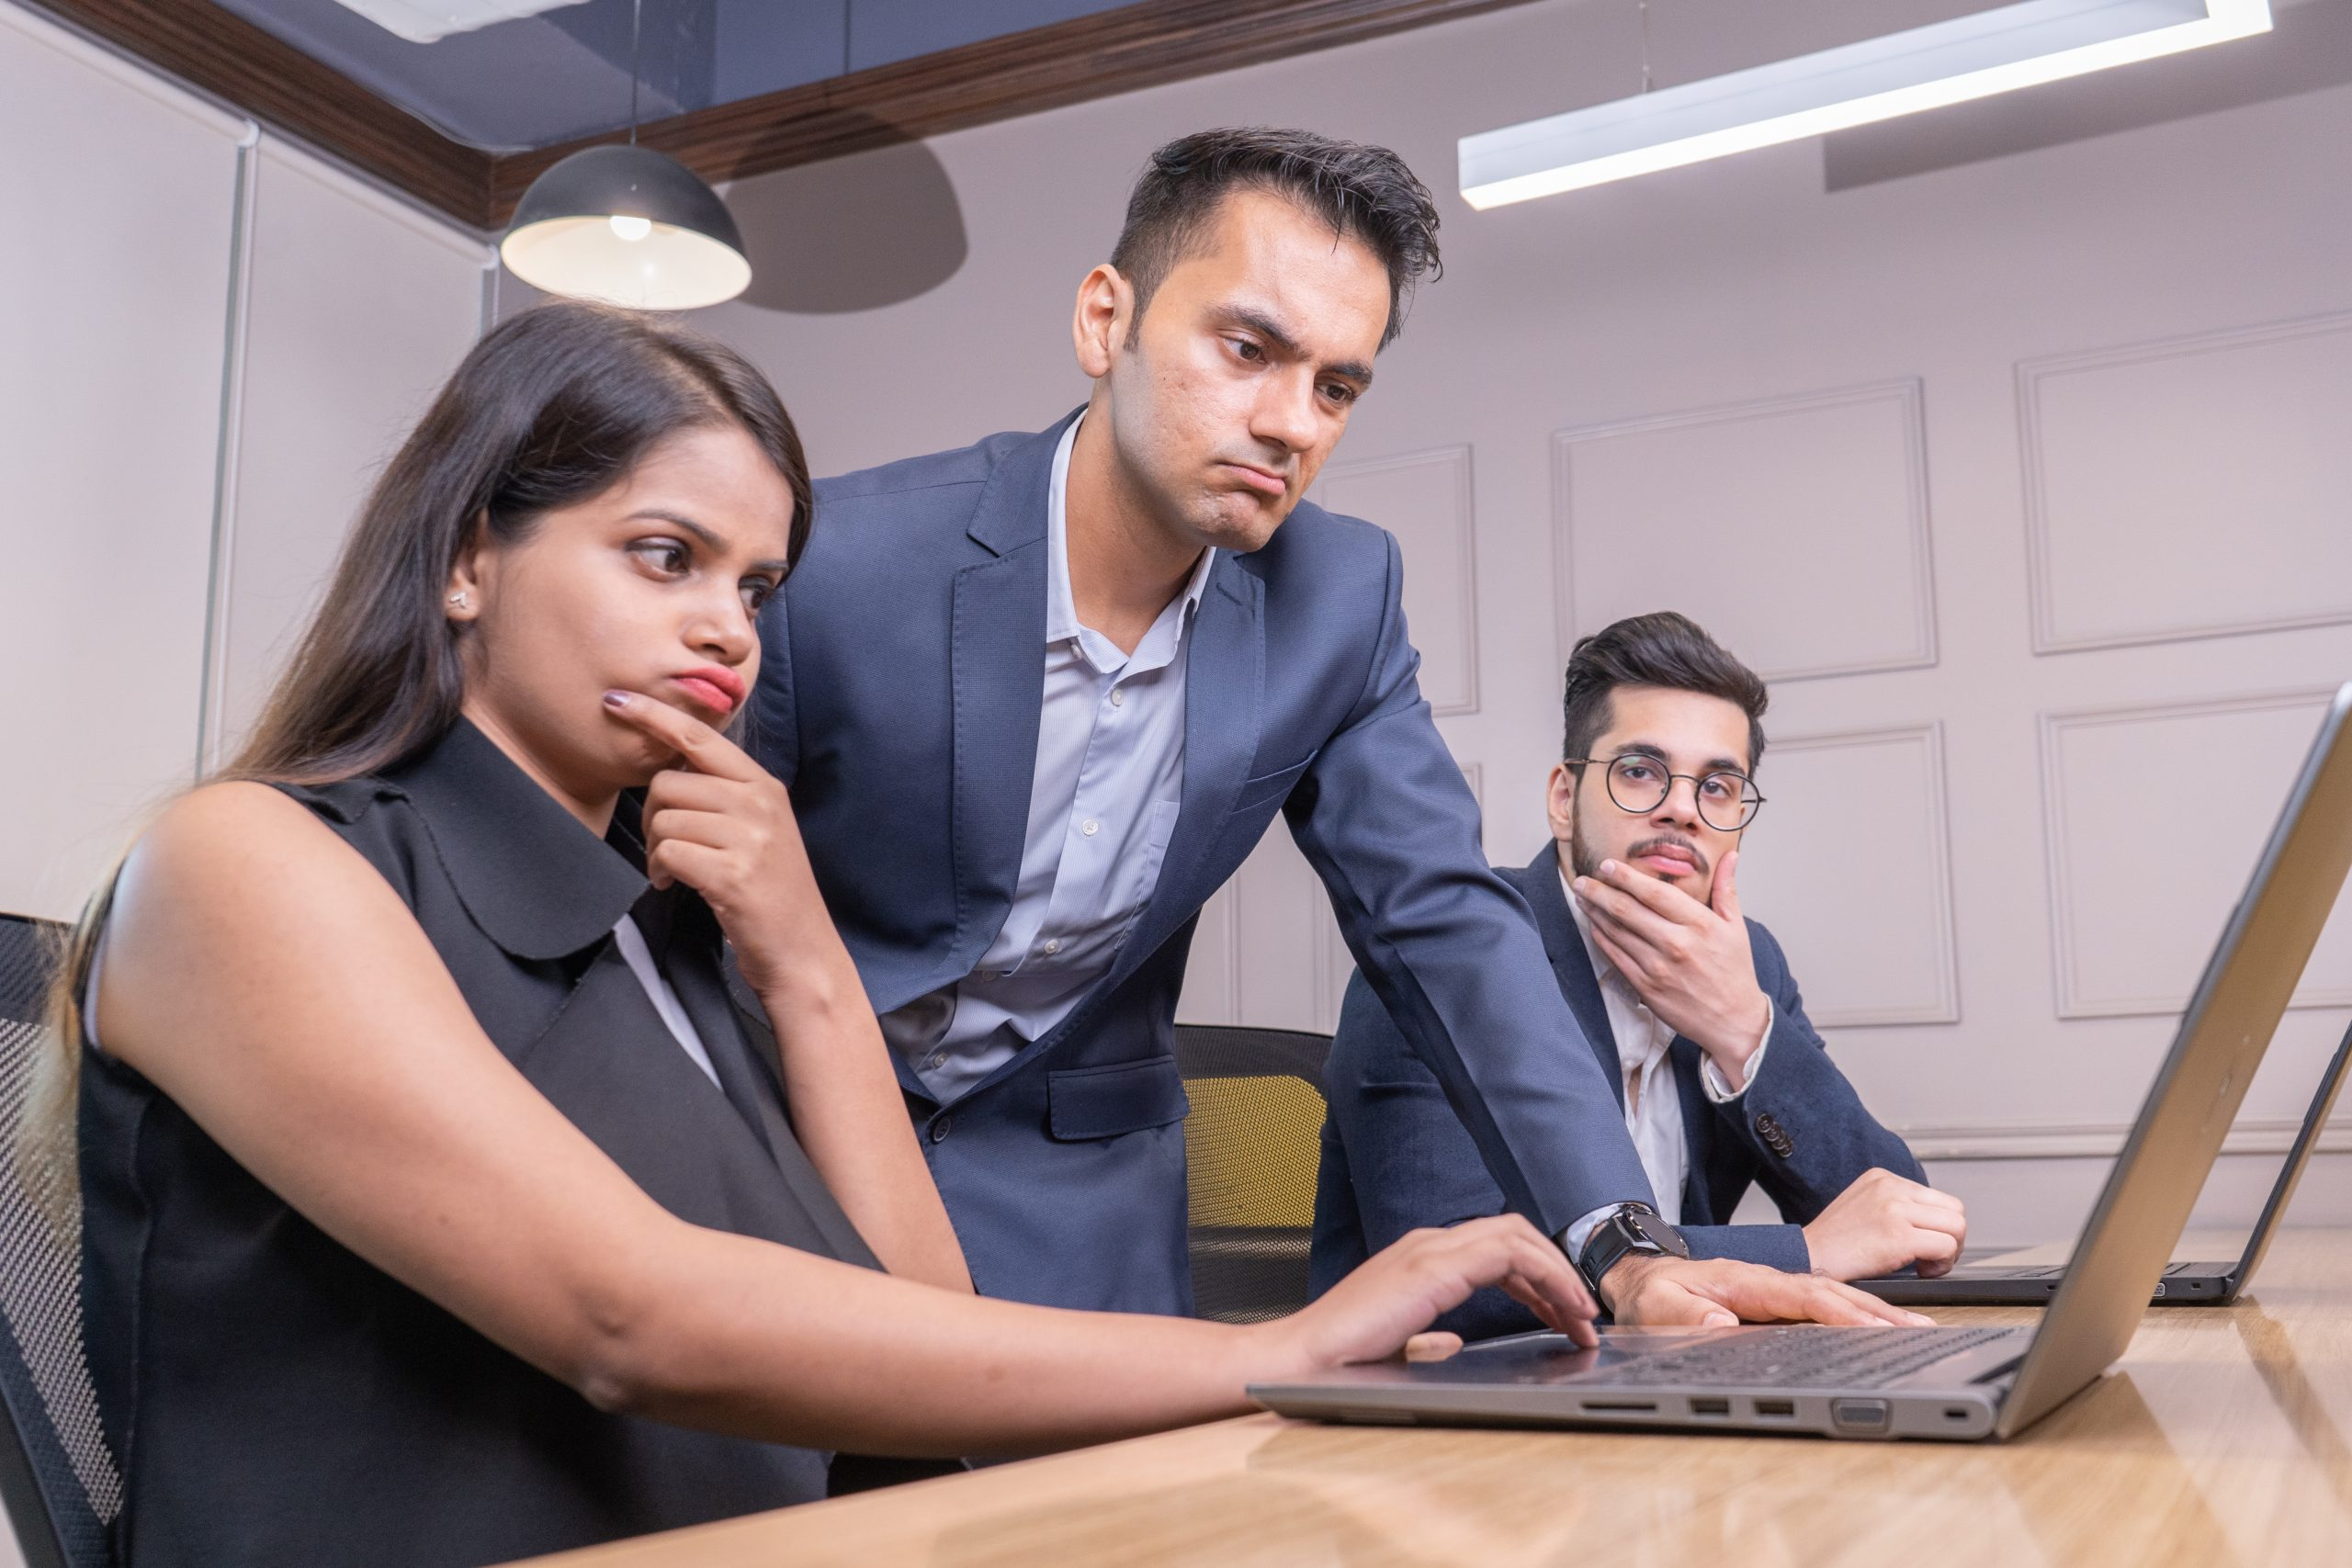 Boss unhappy with employees performance